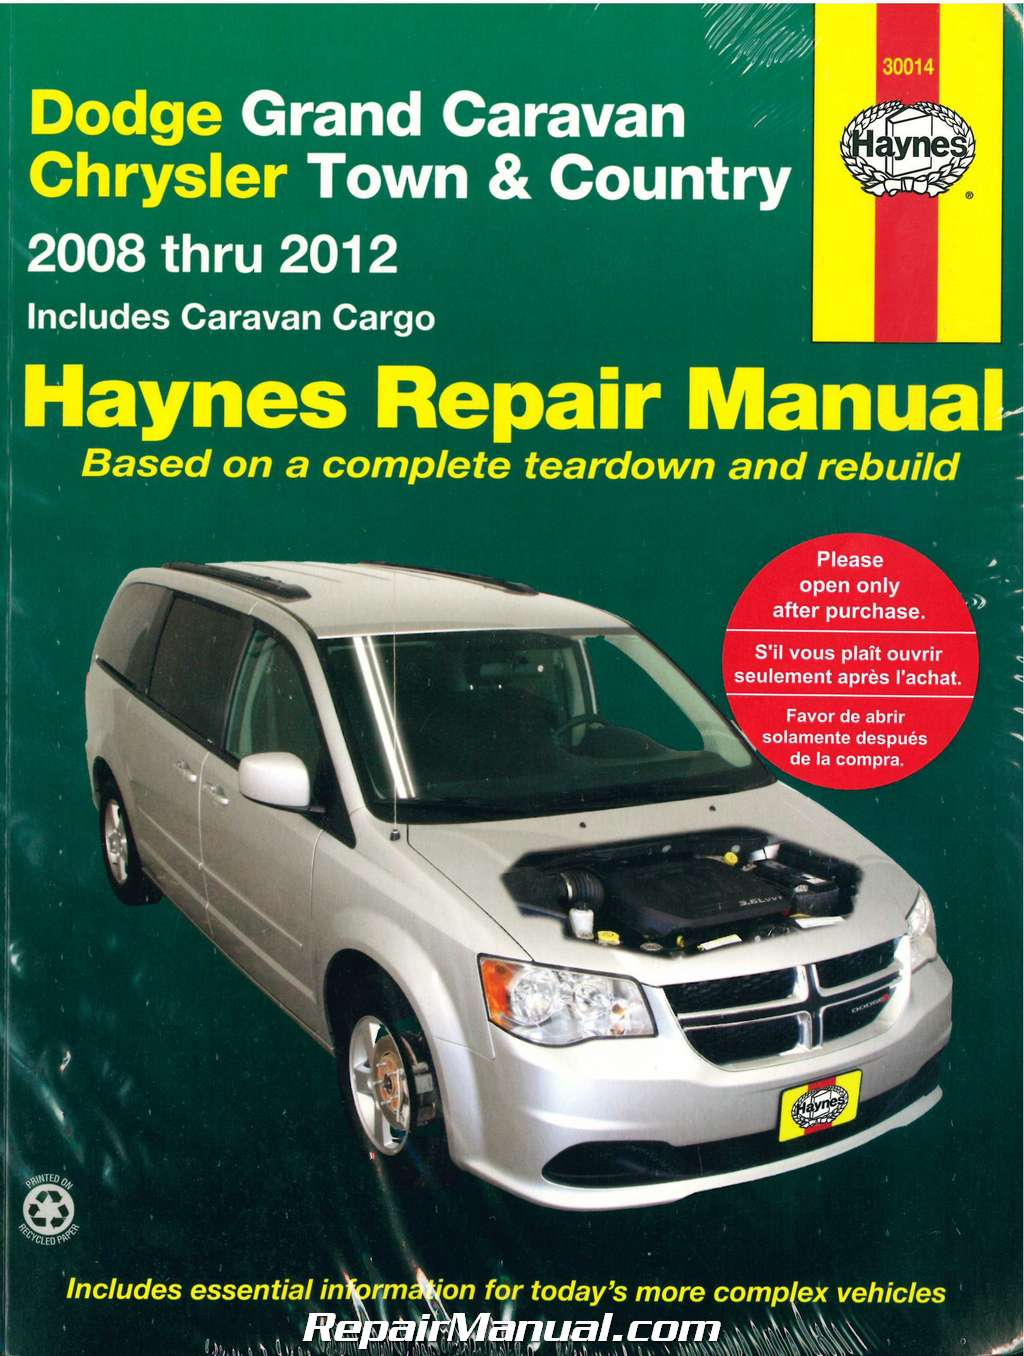 Dodge Grand Caravan Chrysler Town Country Van 2008-2012 Haynes Car Repair  Manual